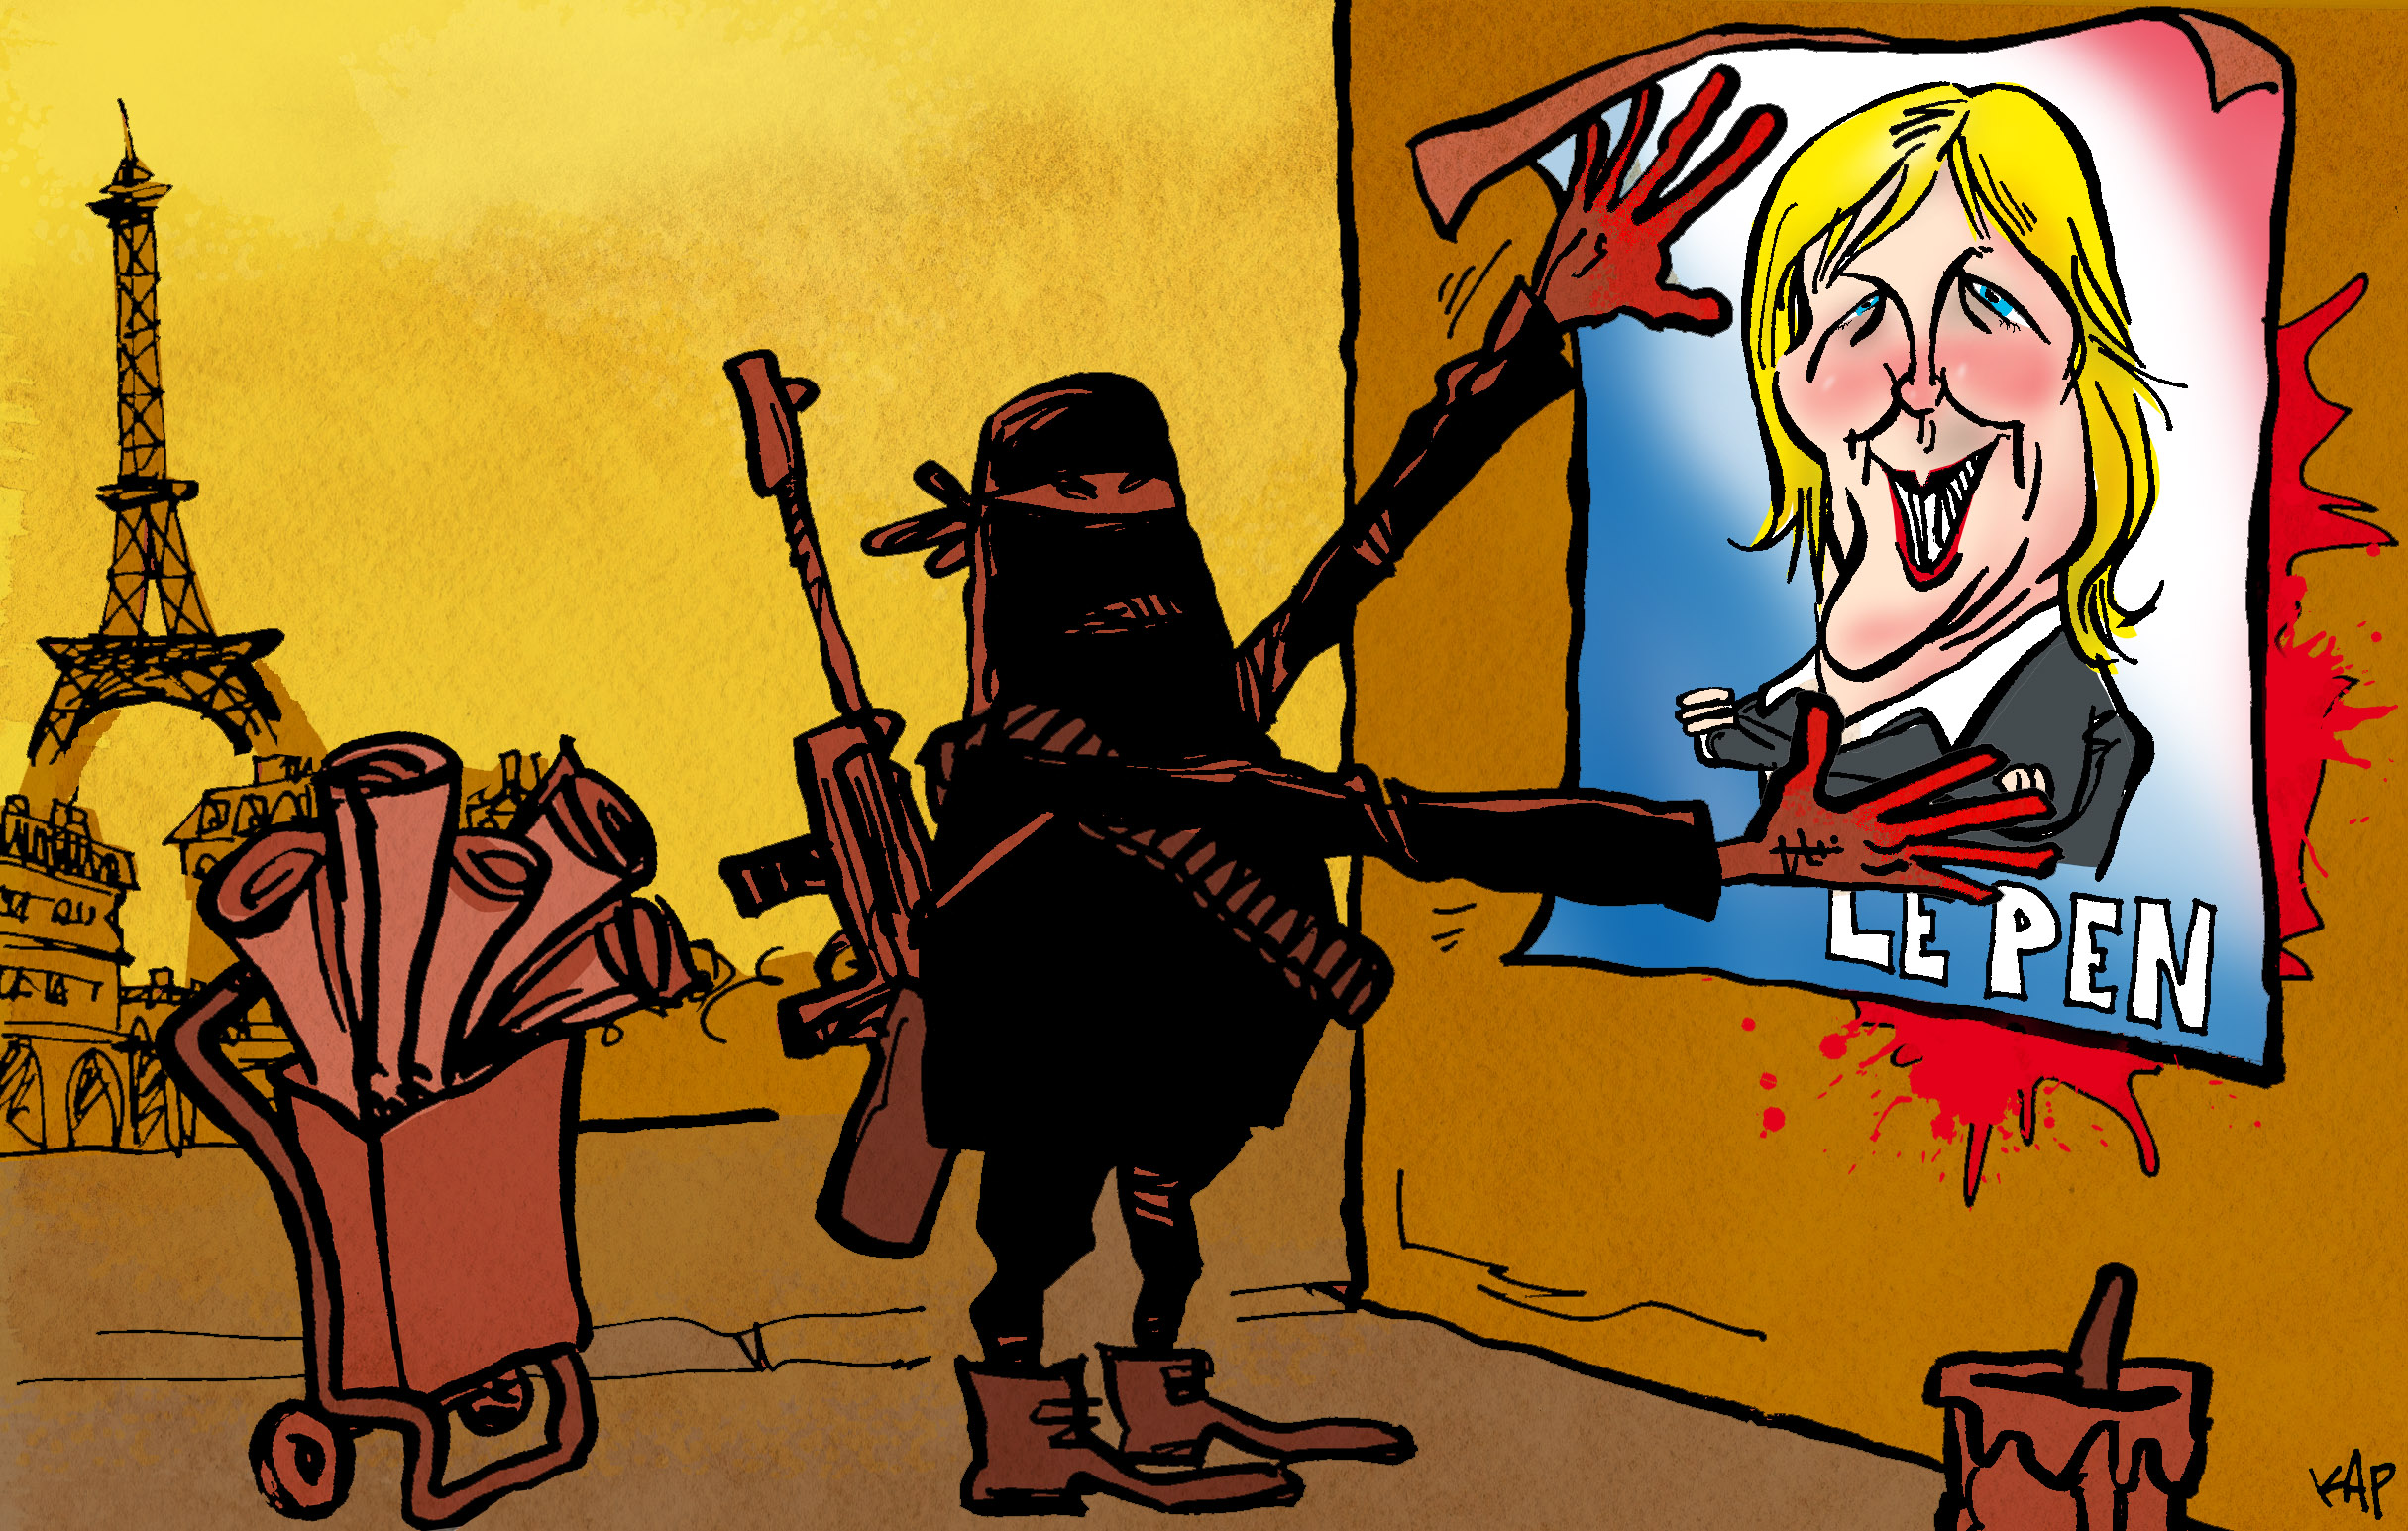 cartoon of ISIS militants putting up Marine LePen poster